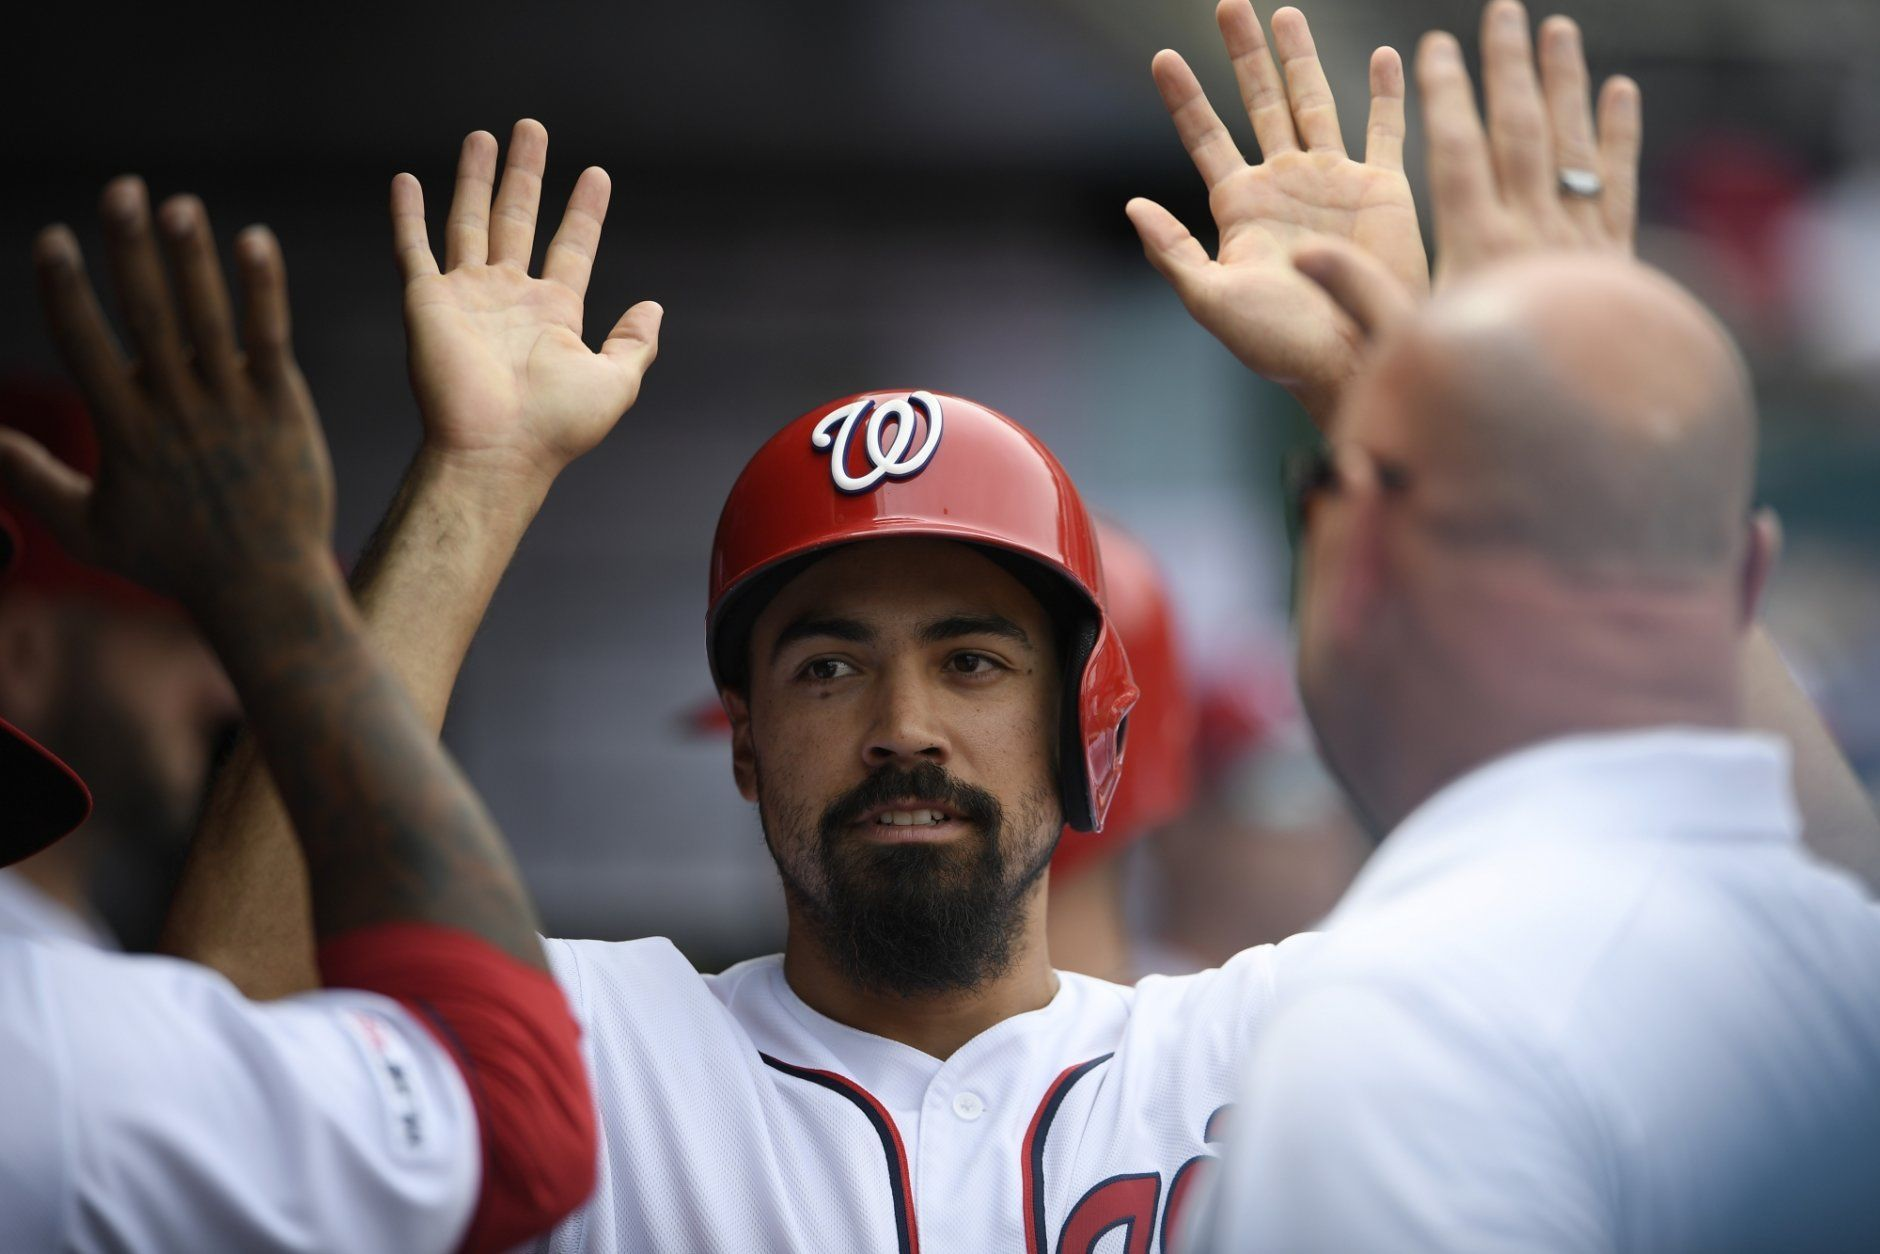 Washington Nationals' Anthony Rendon celebrates in the dugout after he scored on a double by Juan Soto during the third inning of a baseball game against the San Francisco Giants, Thursday, April 18, 2019, in Washington. (AP Photo/Nick Wass)